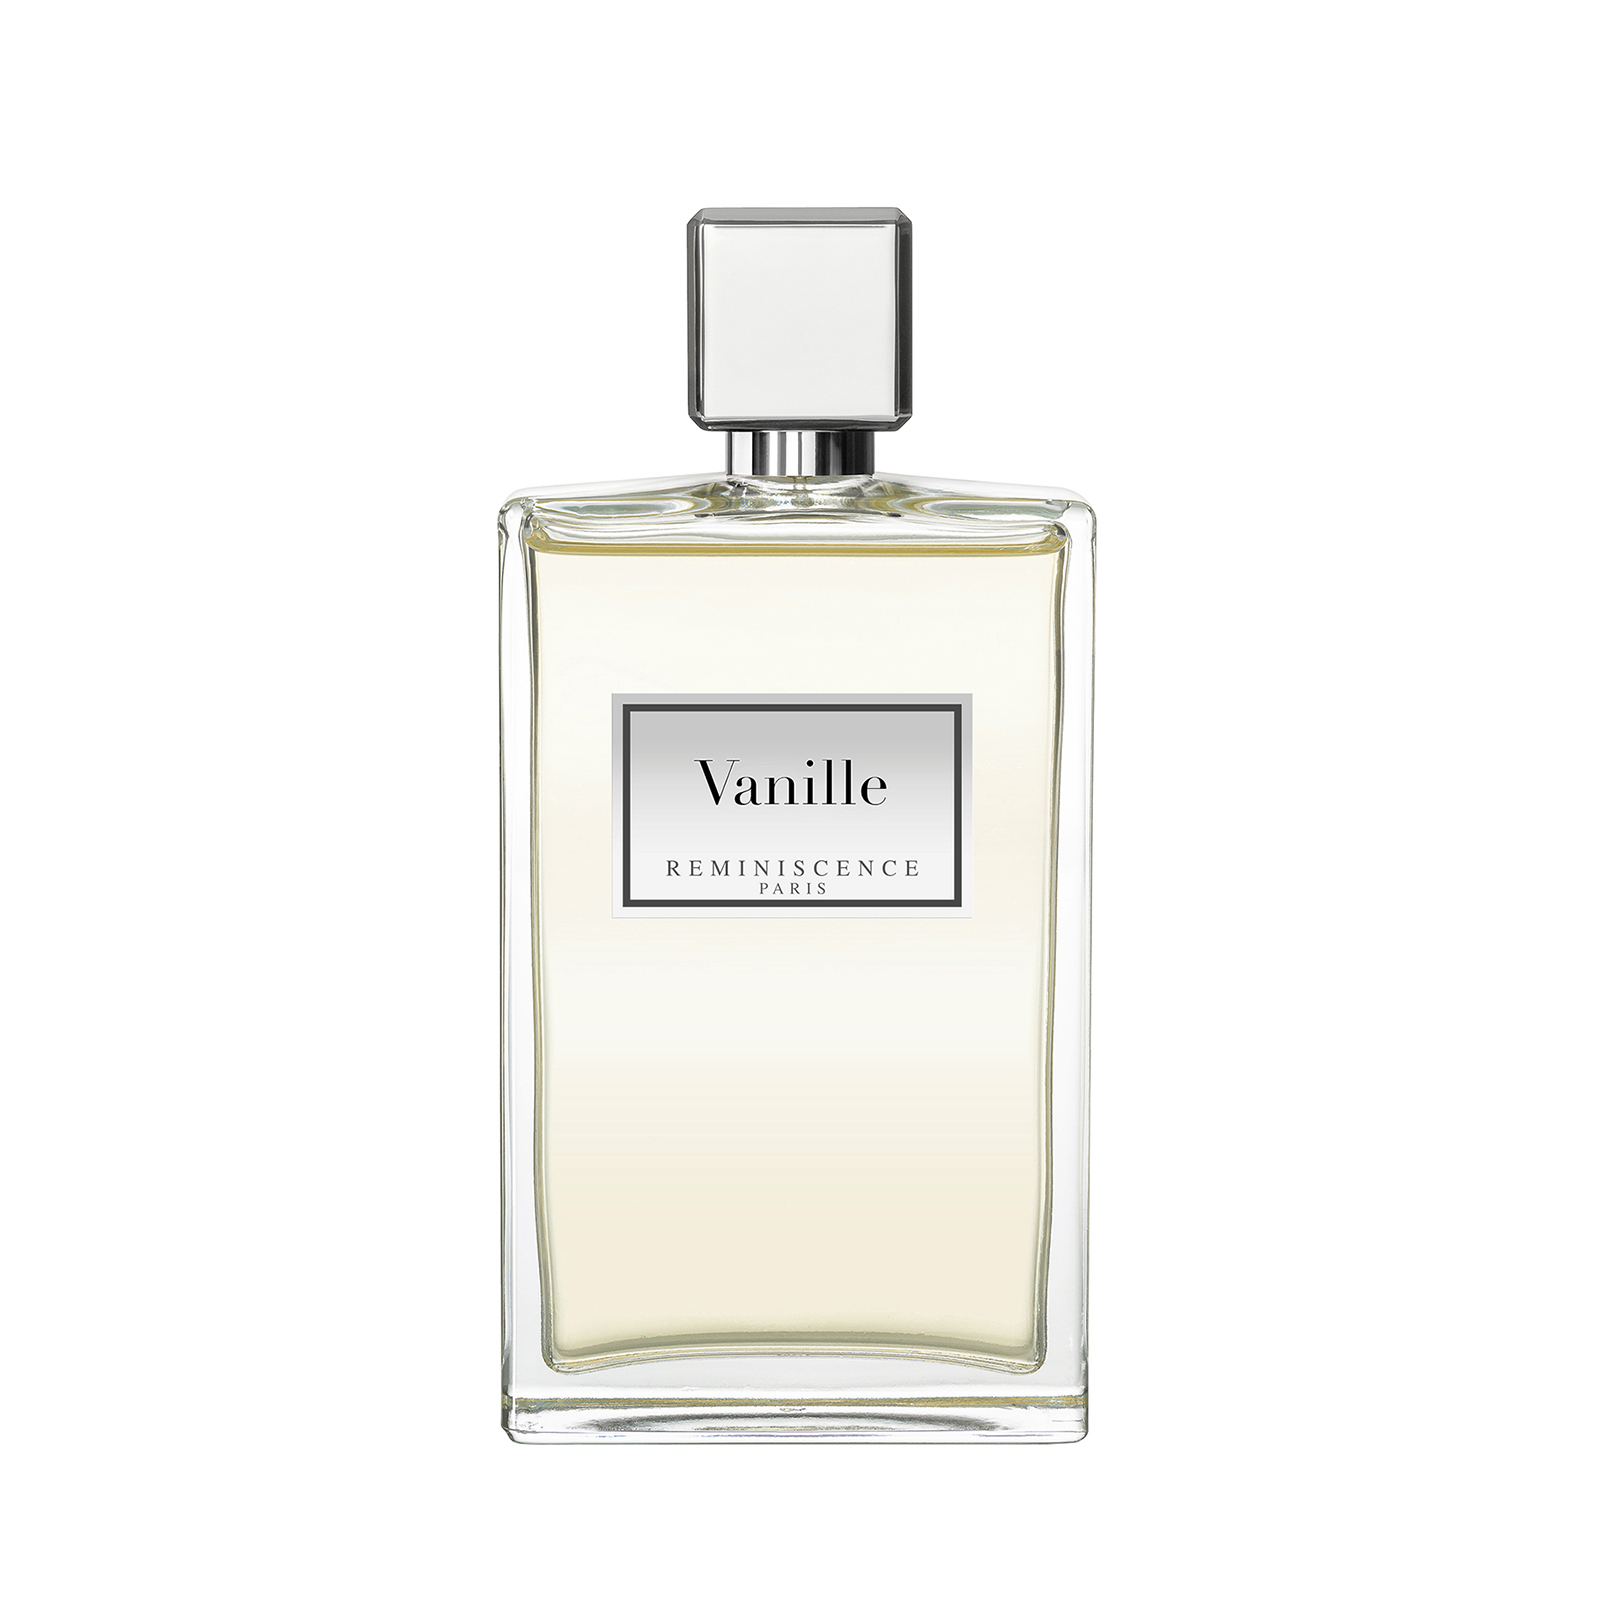 Vanille REMINISECNCE 100ML 52€